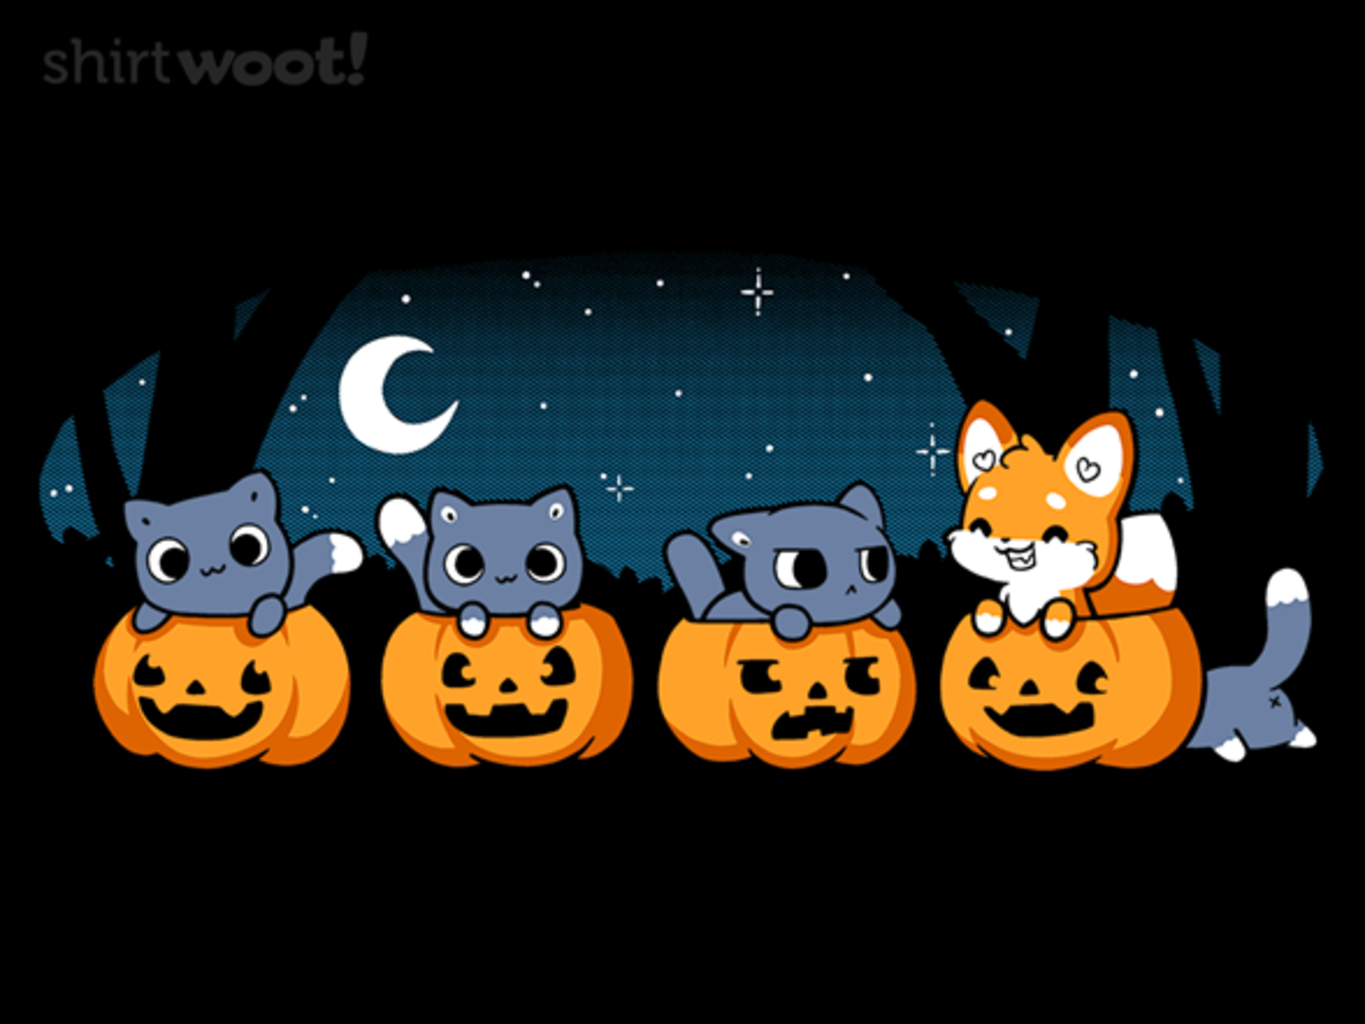 Woot!: The Halloween Fox